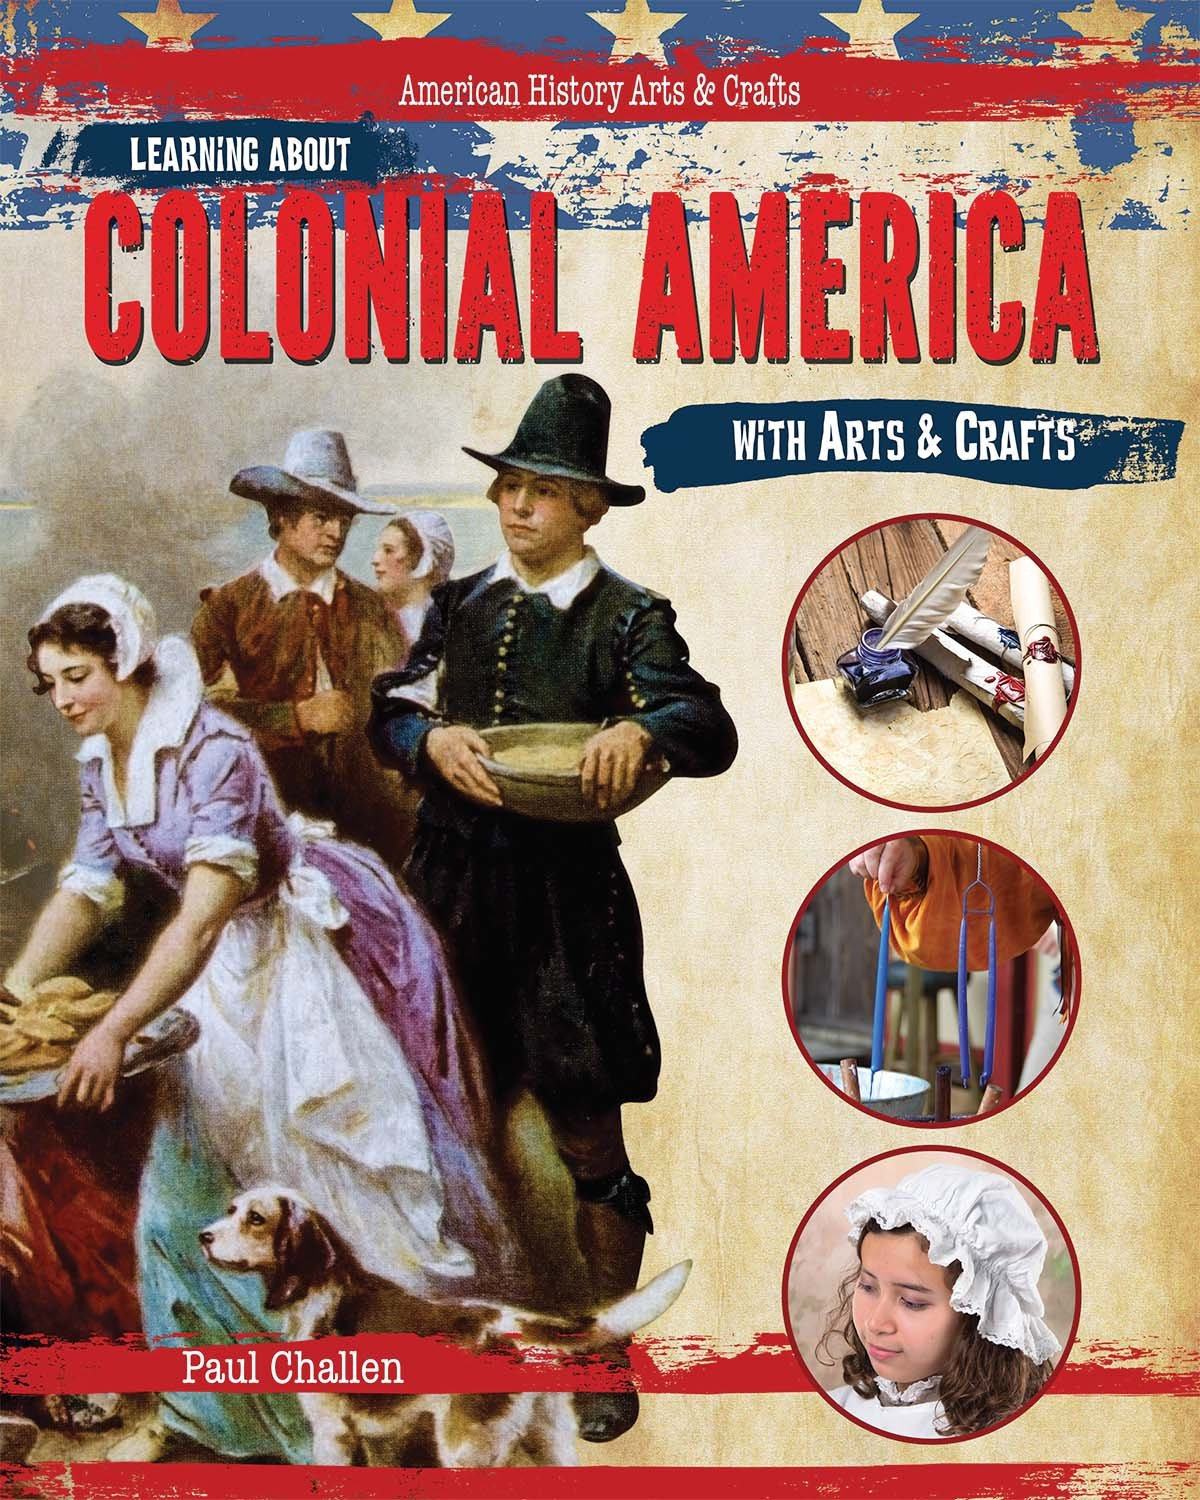 Download Learning about Colonial America with Arts & Crafts (American History Arts & Crafts) pdf epub